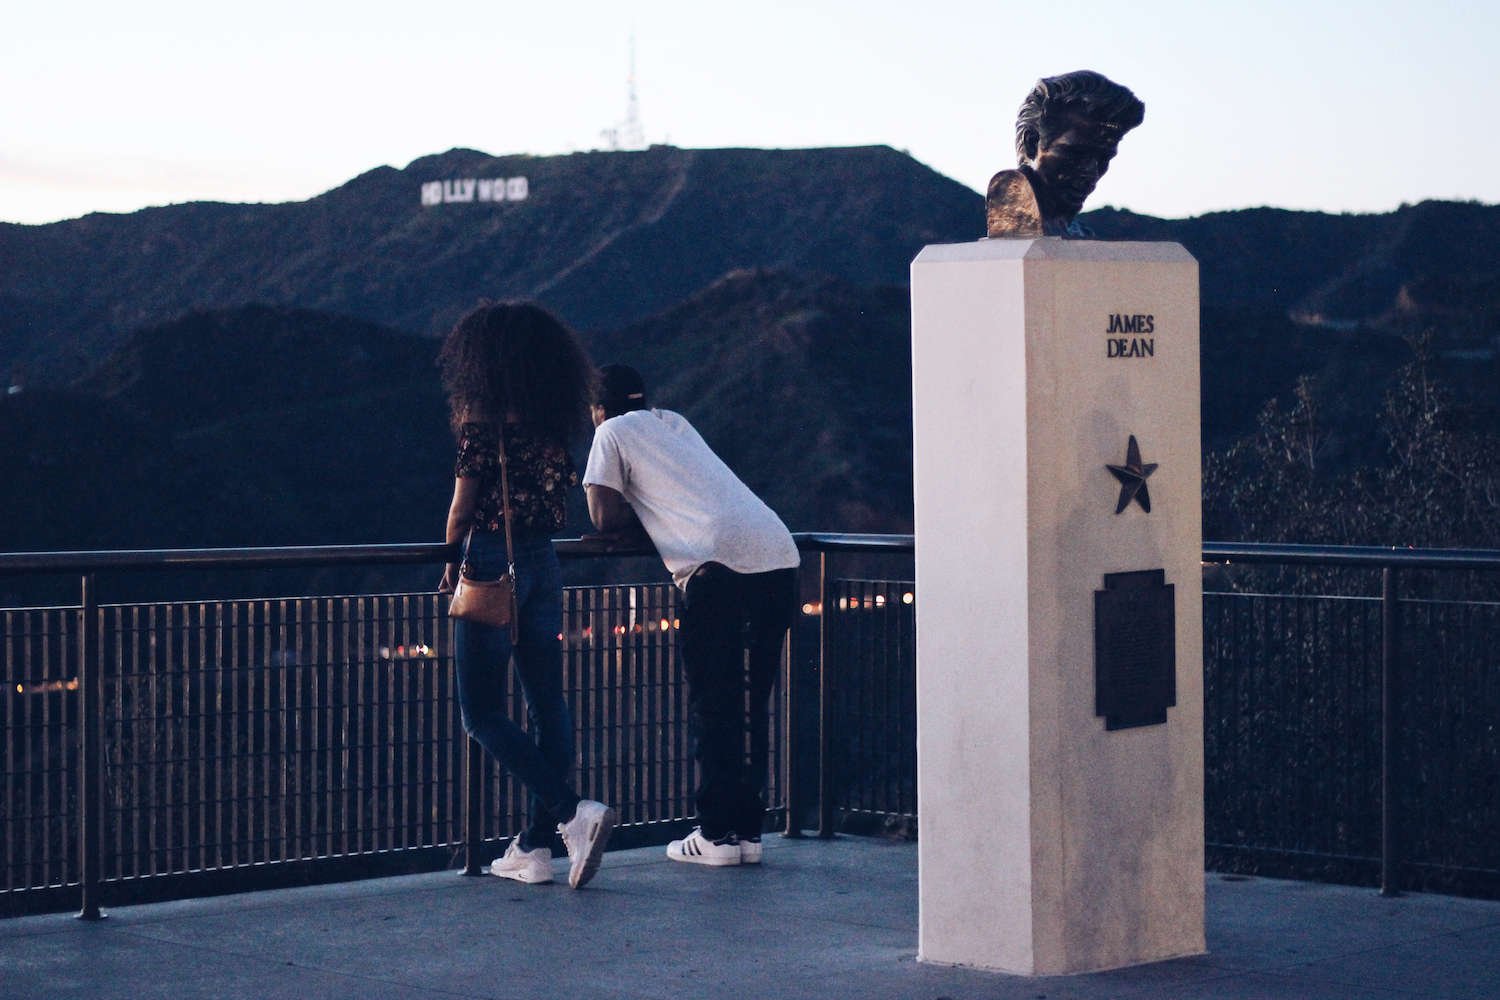 Black woman and Black man facing the Hollywood sign next to the James Dean monument